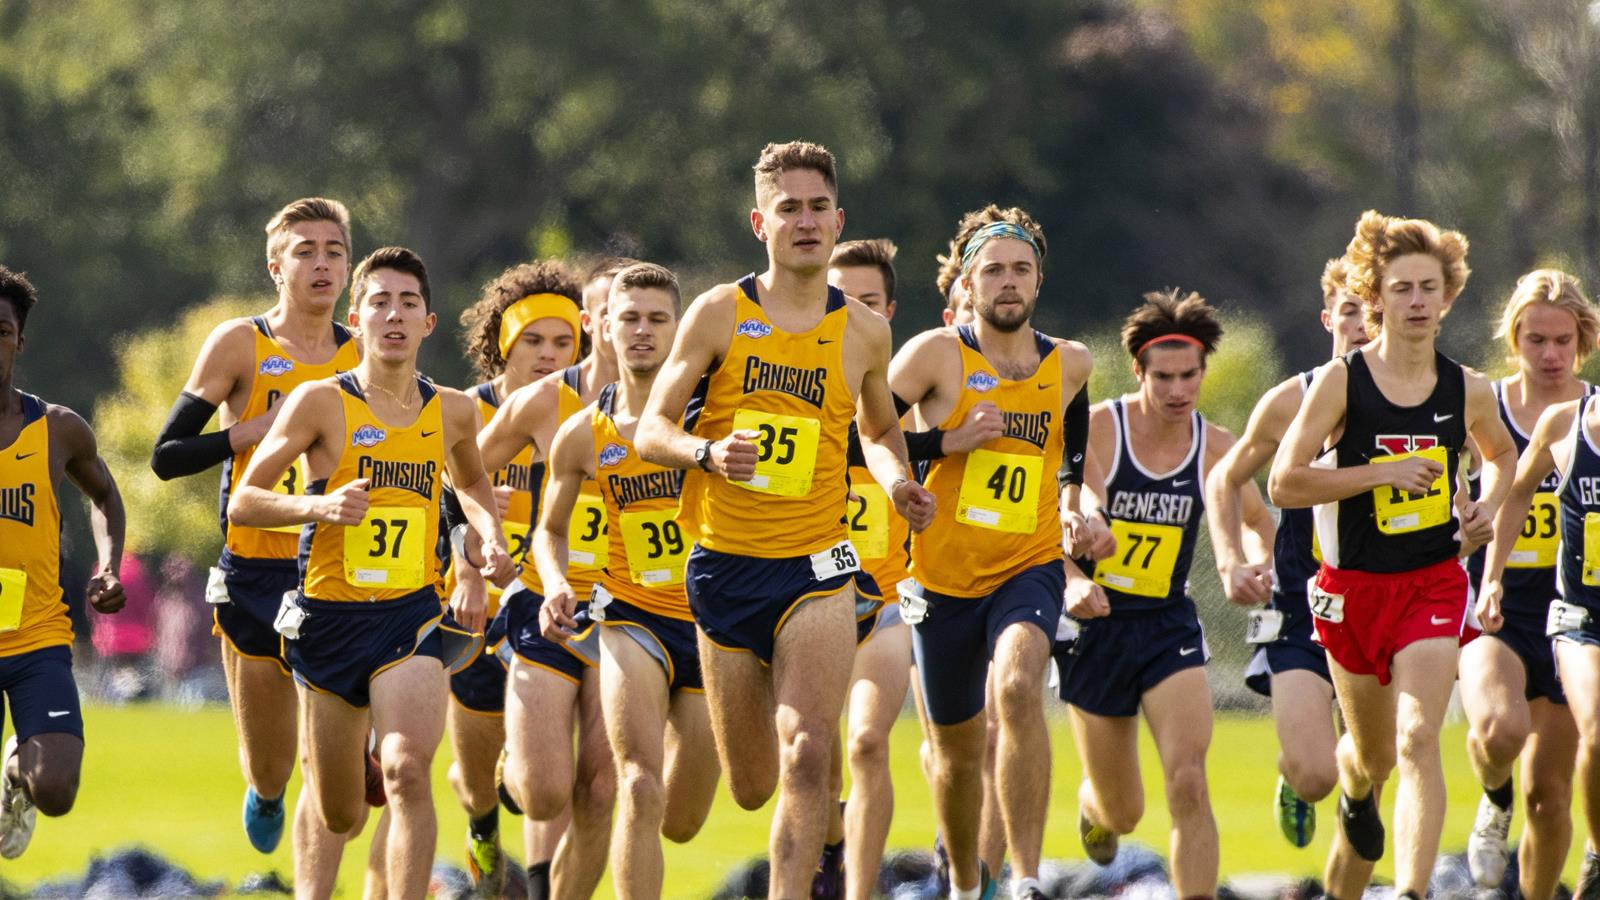 Cross Country/Track - Canisius College Athletics